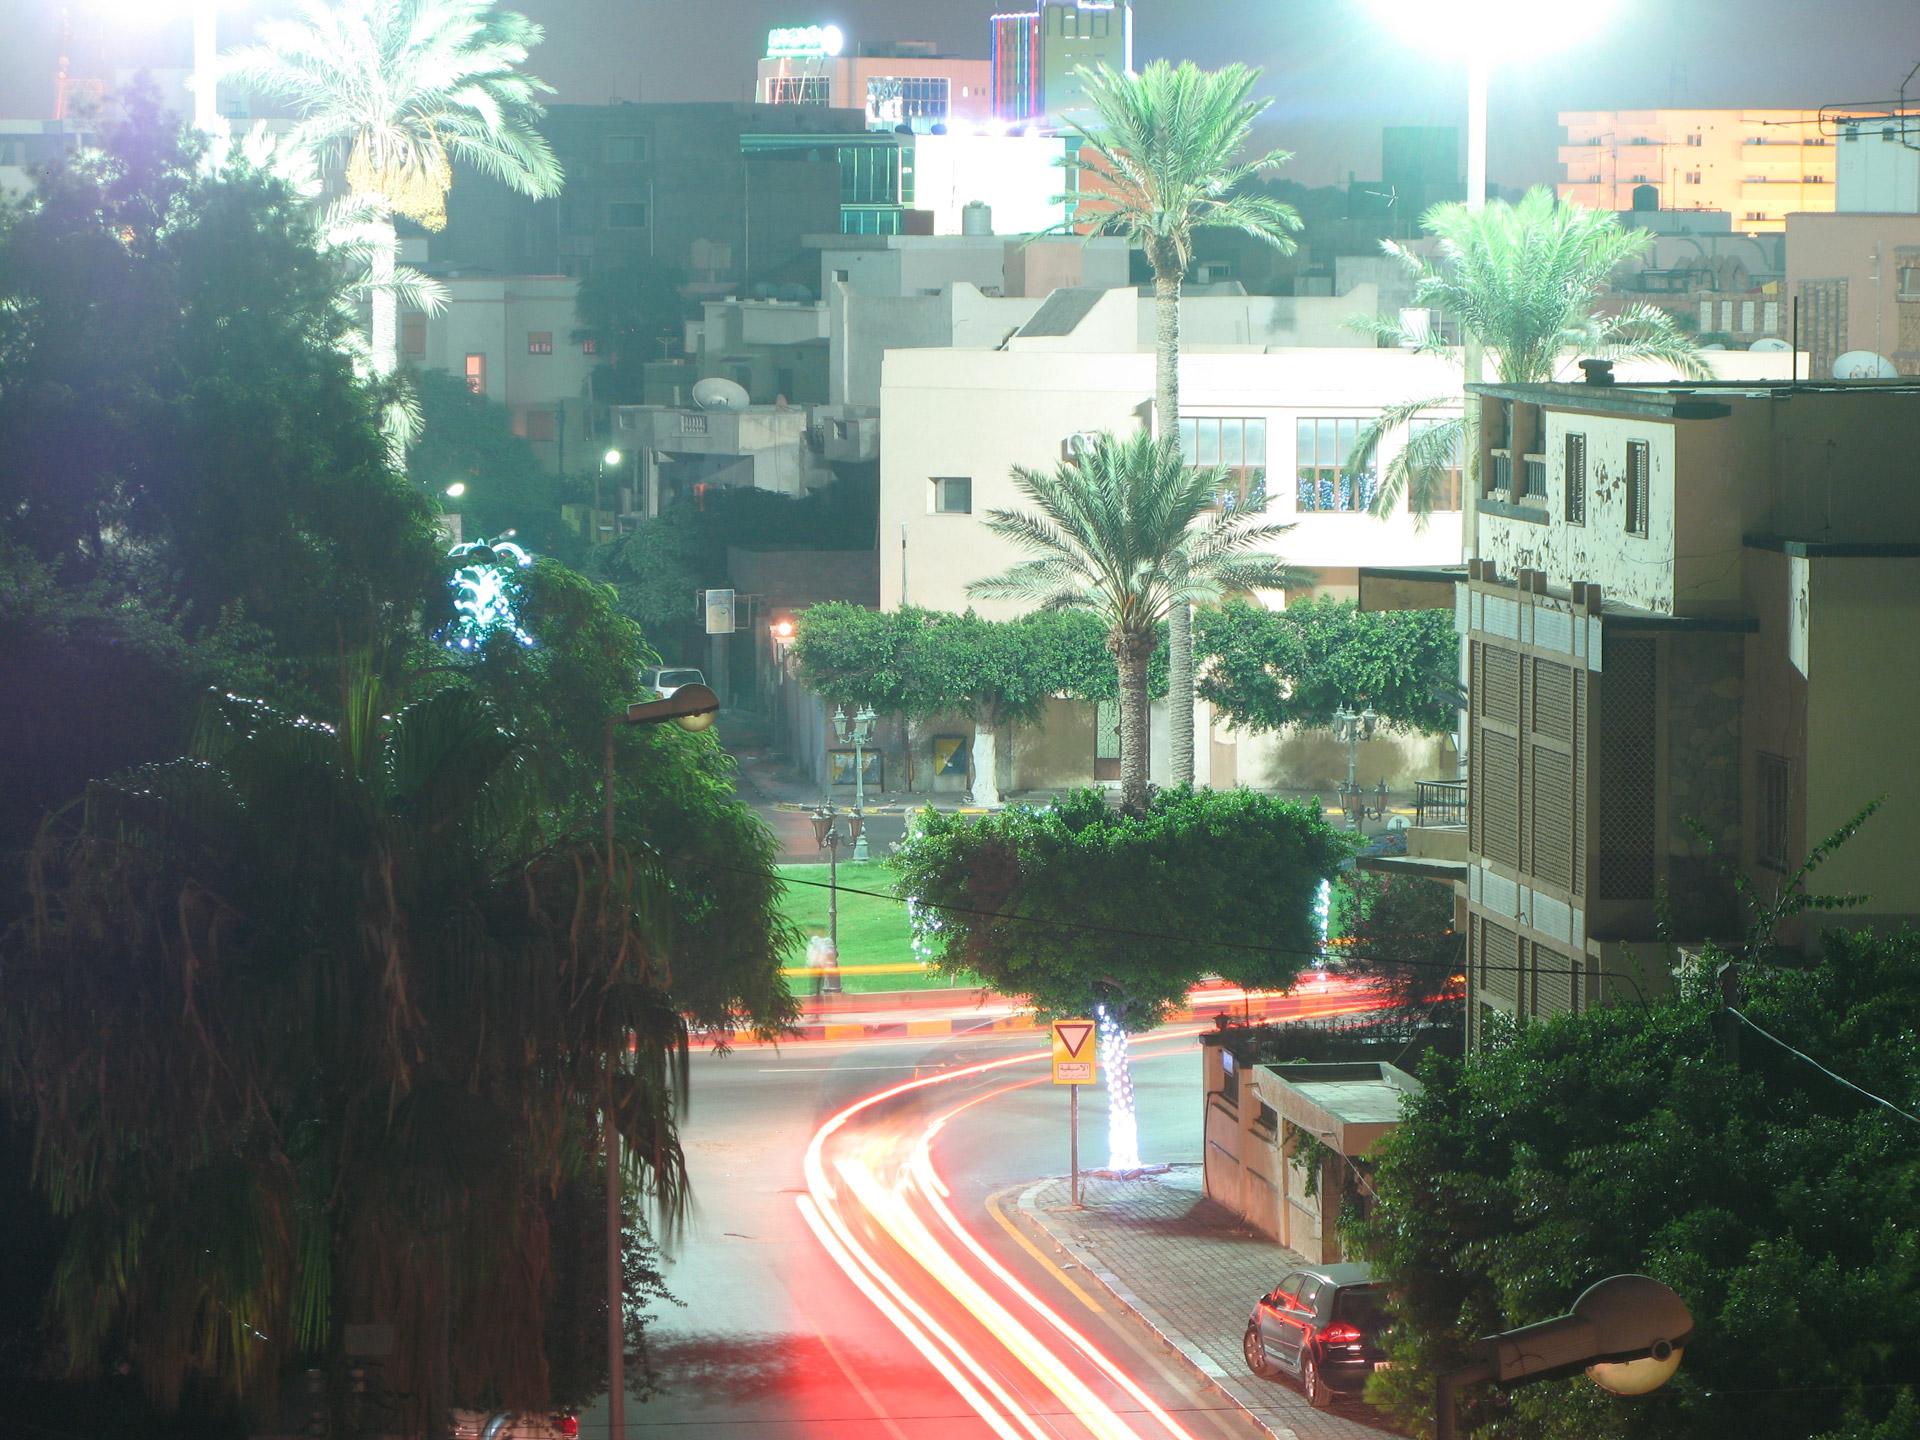 This is a series of long exposure photographs taken in Tripoli, Libya in the summer of 2009 from the rooftops of the city.